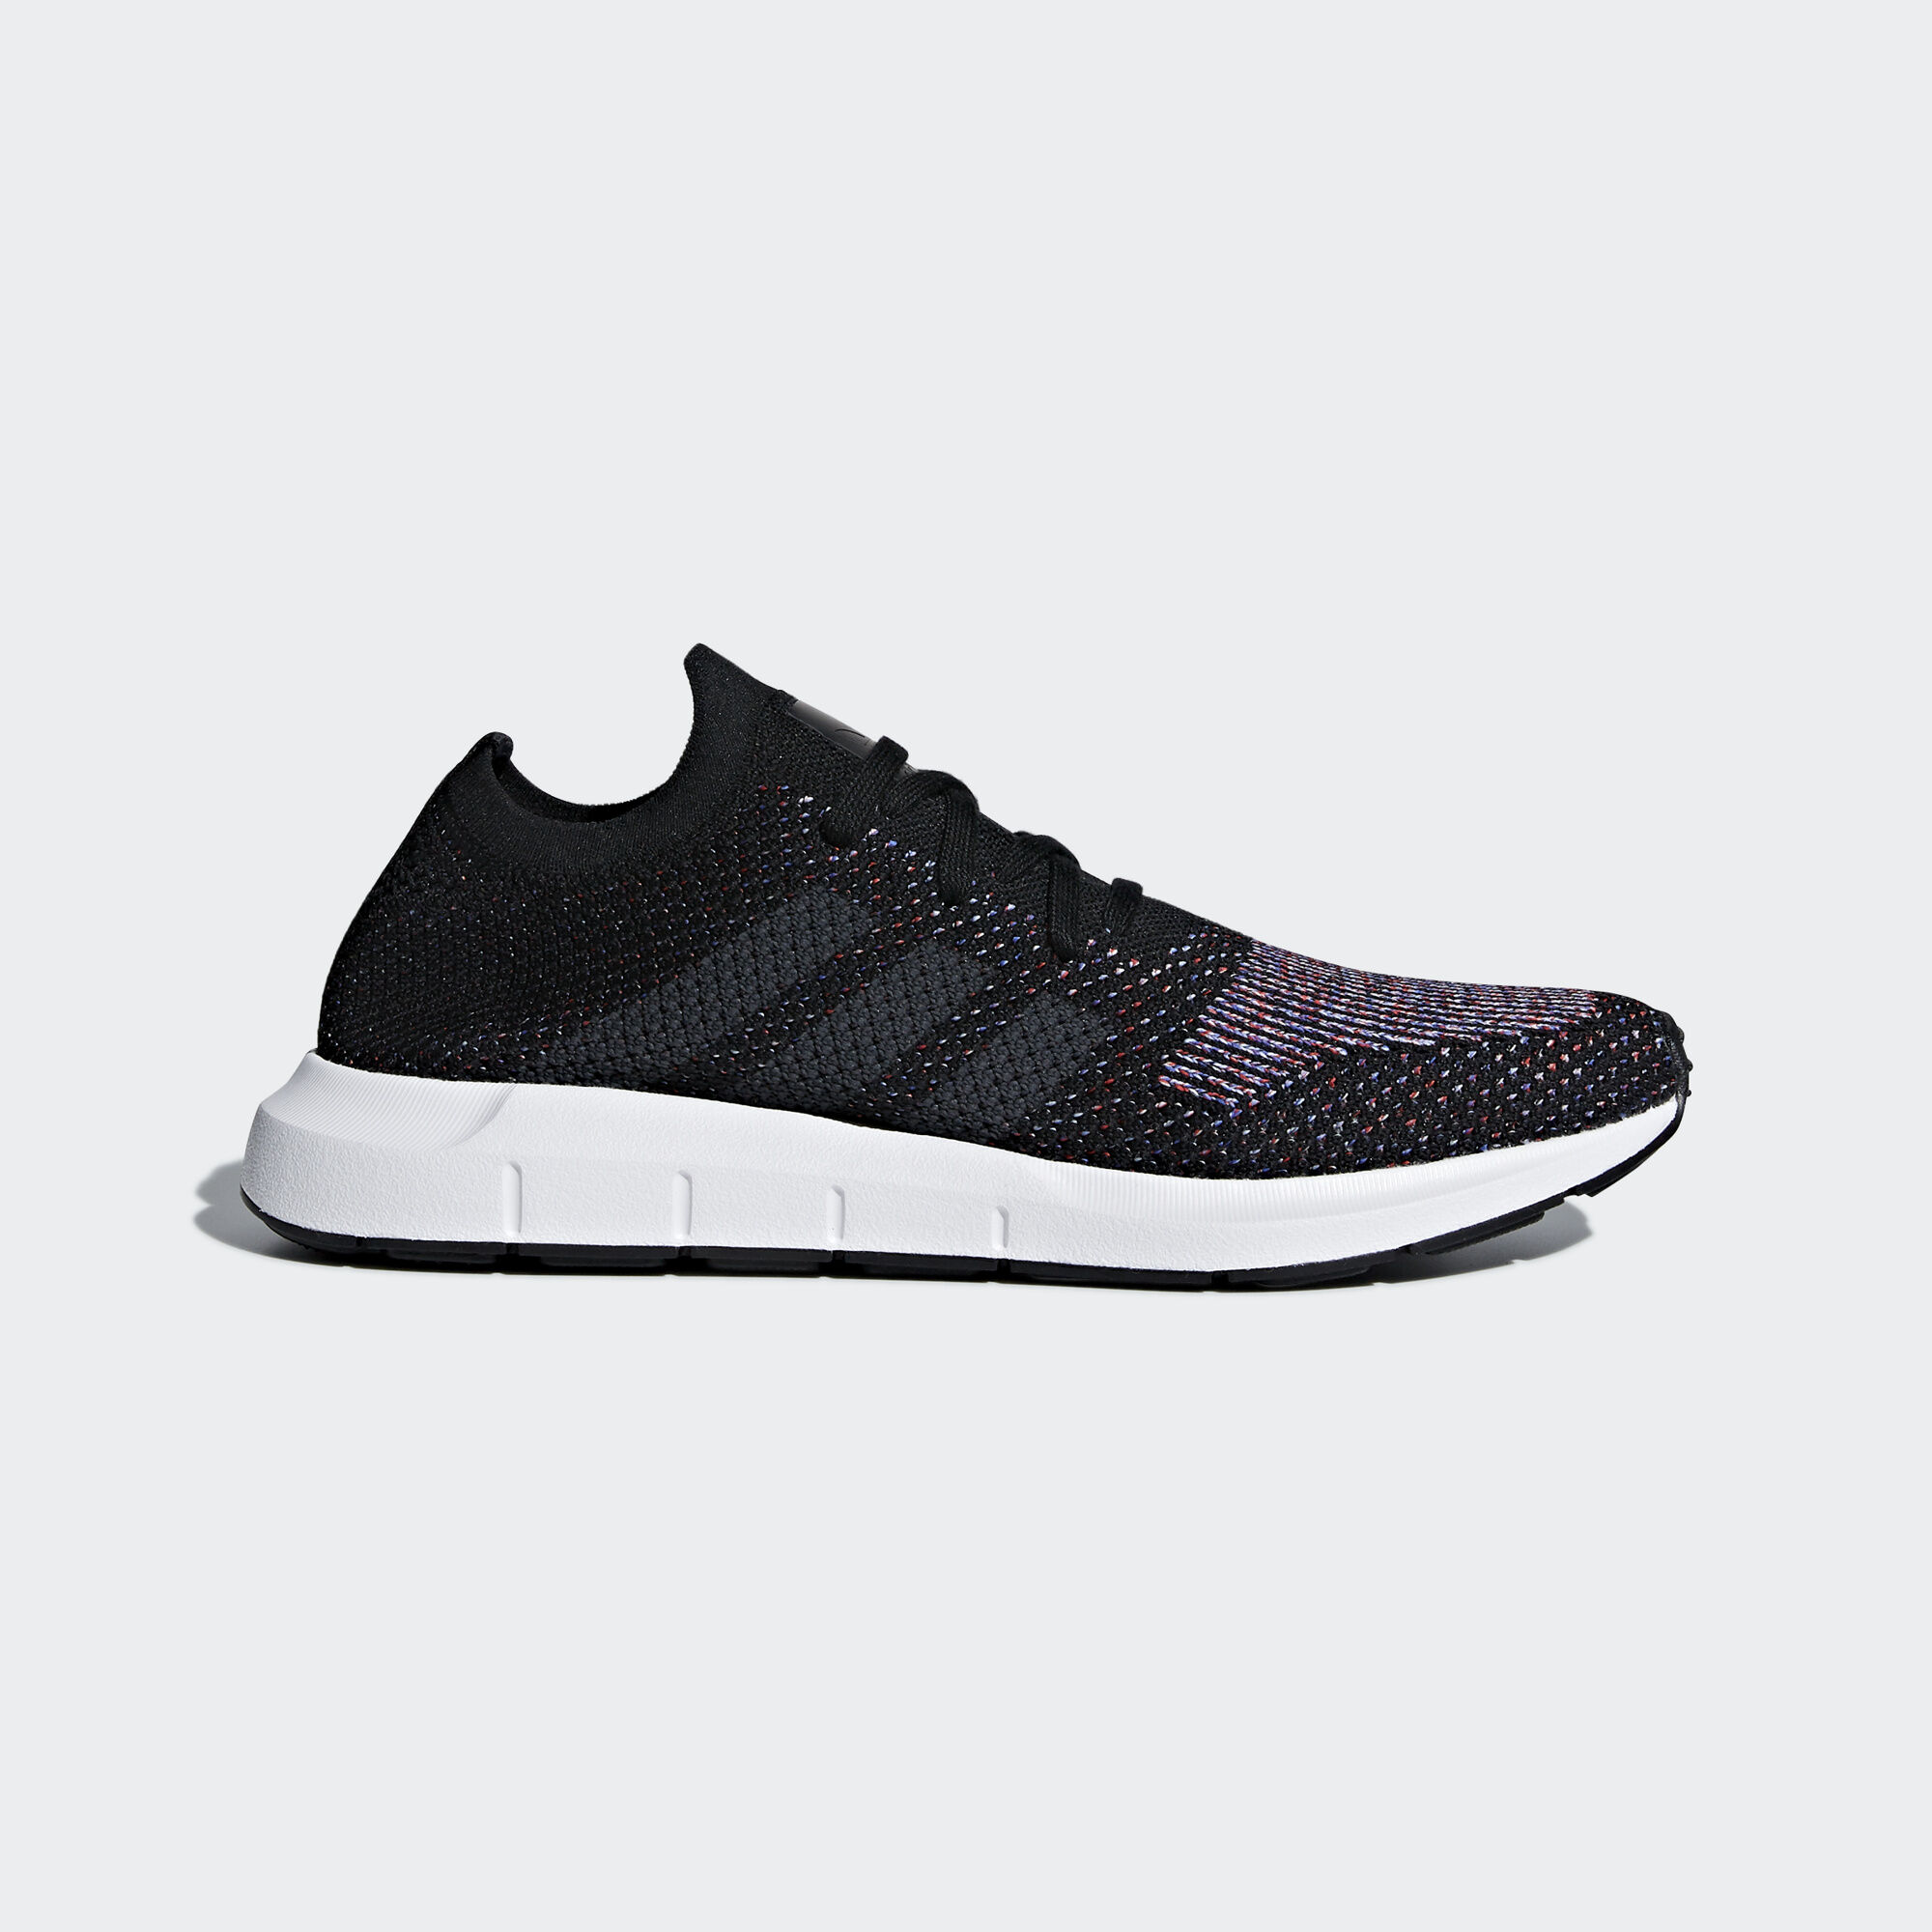 adidas Swift Run Primeknit Sneakers In CQ2894